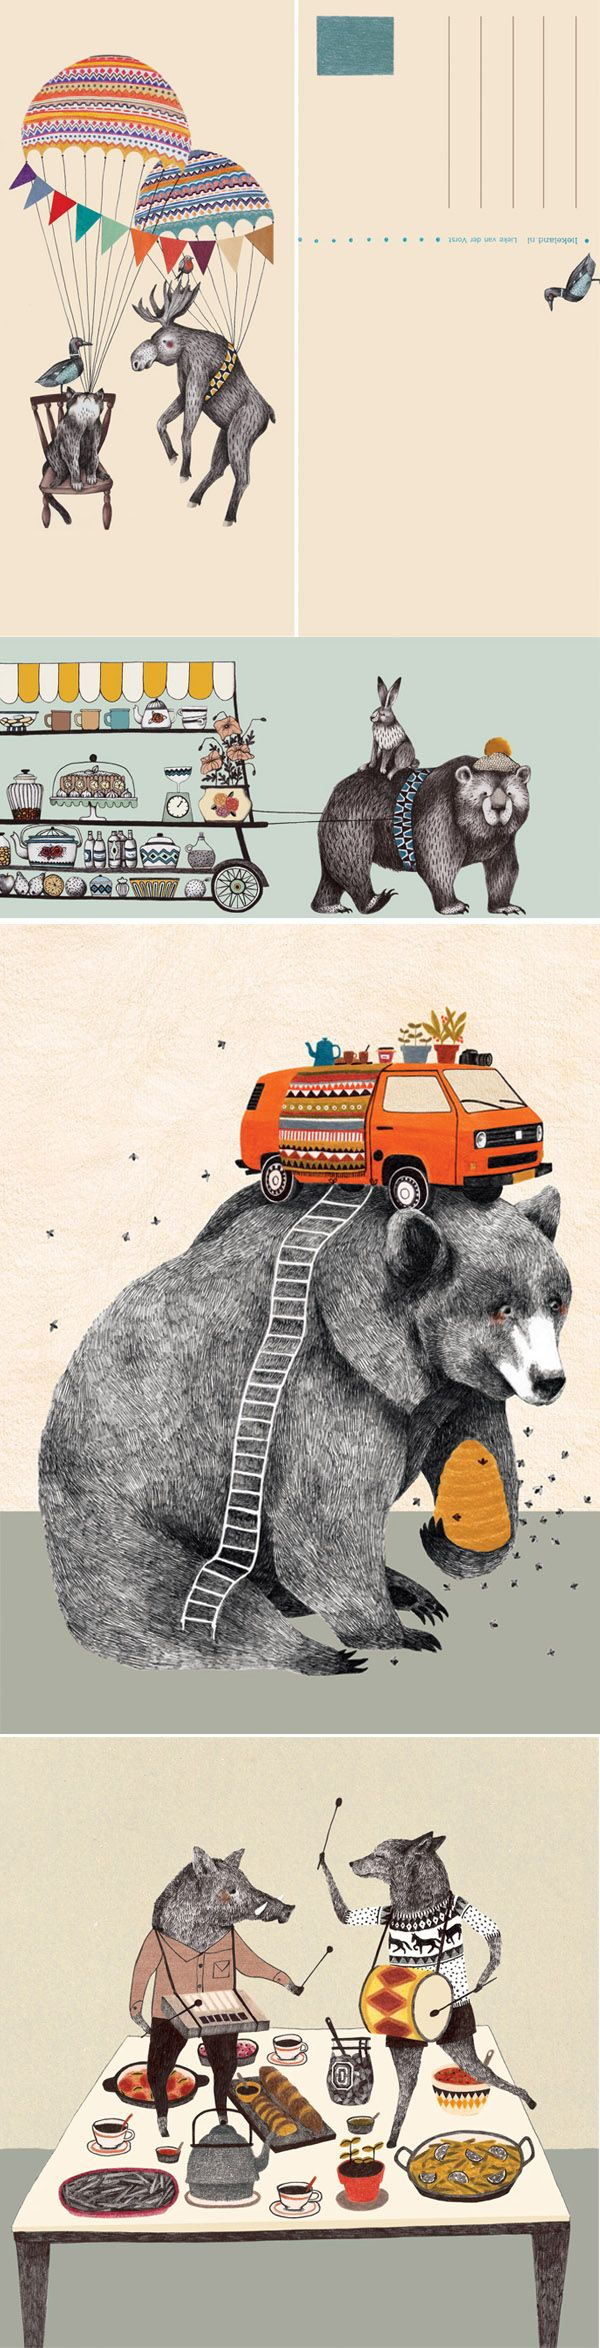 Lieke van der Vorst illustrations - I have a poster of one in my office and it never fails to make me smile.